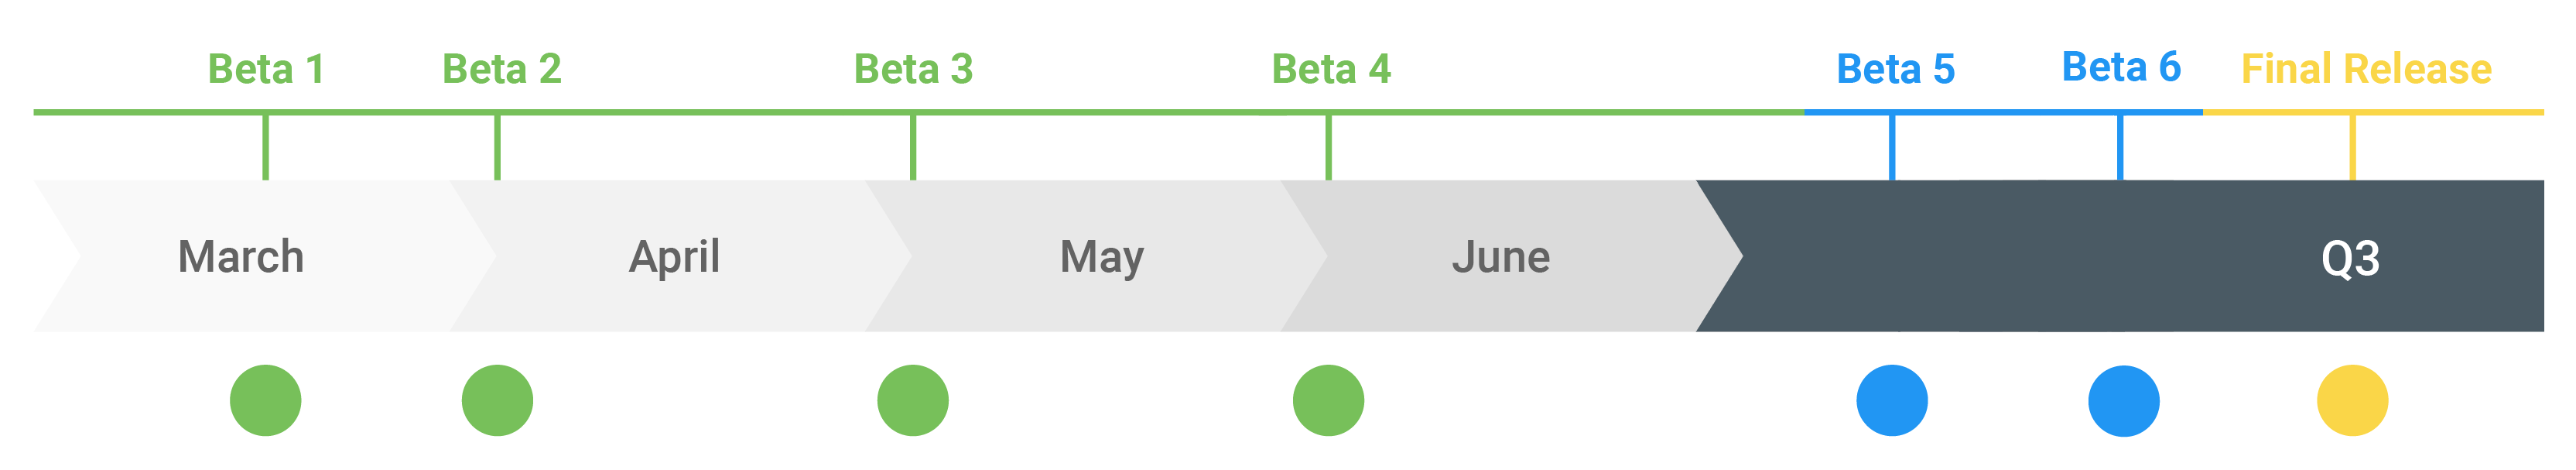 Android Q release timeline